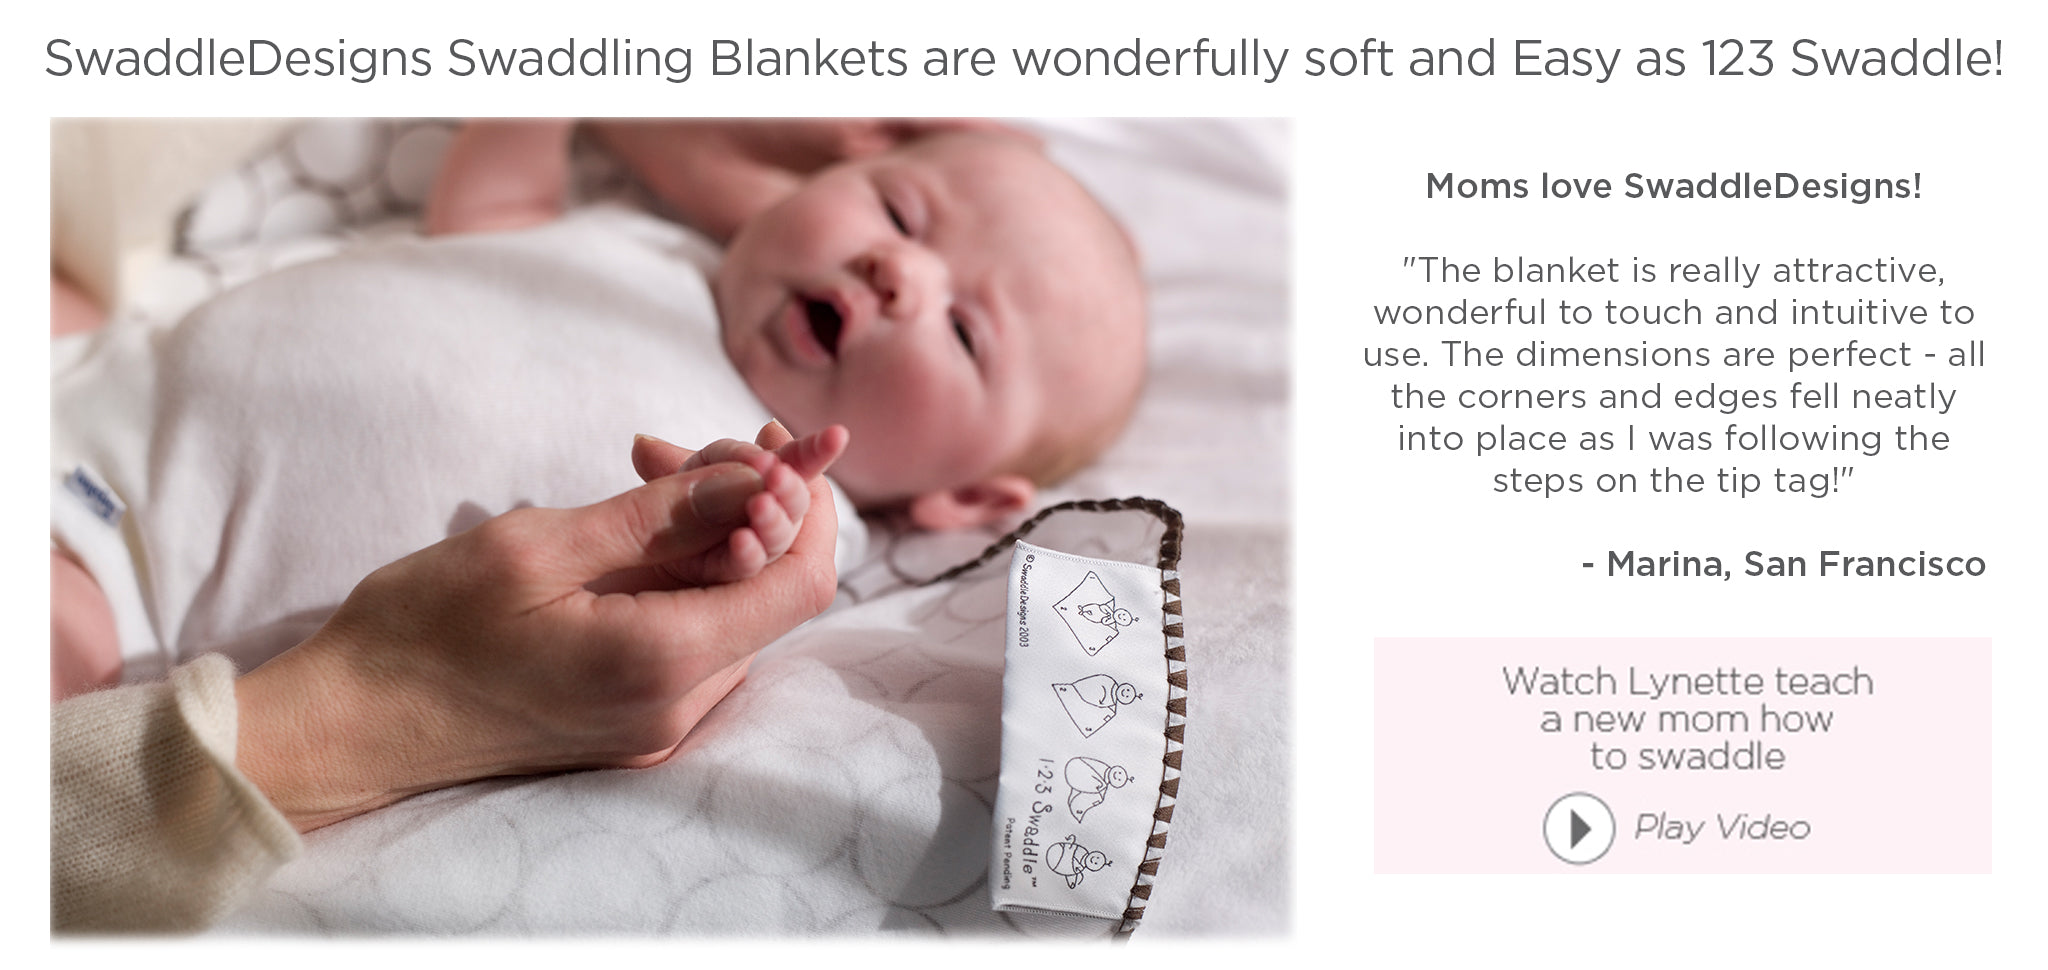 Lynette Damir Teaches a New Mom How to Swaddle